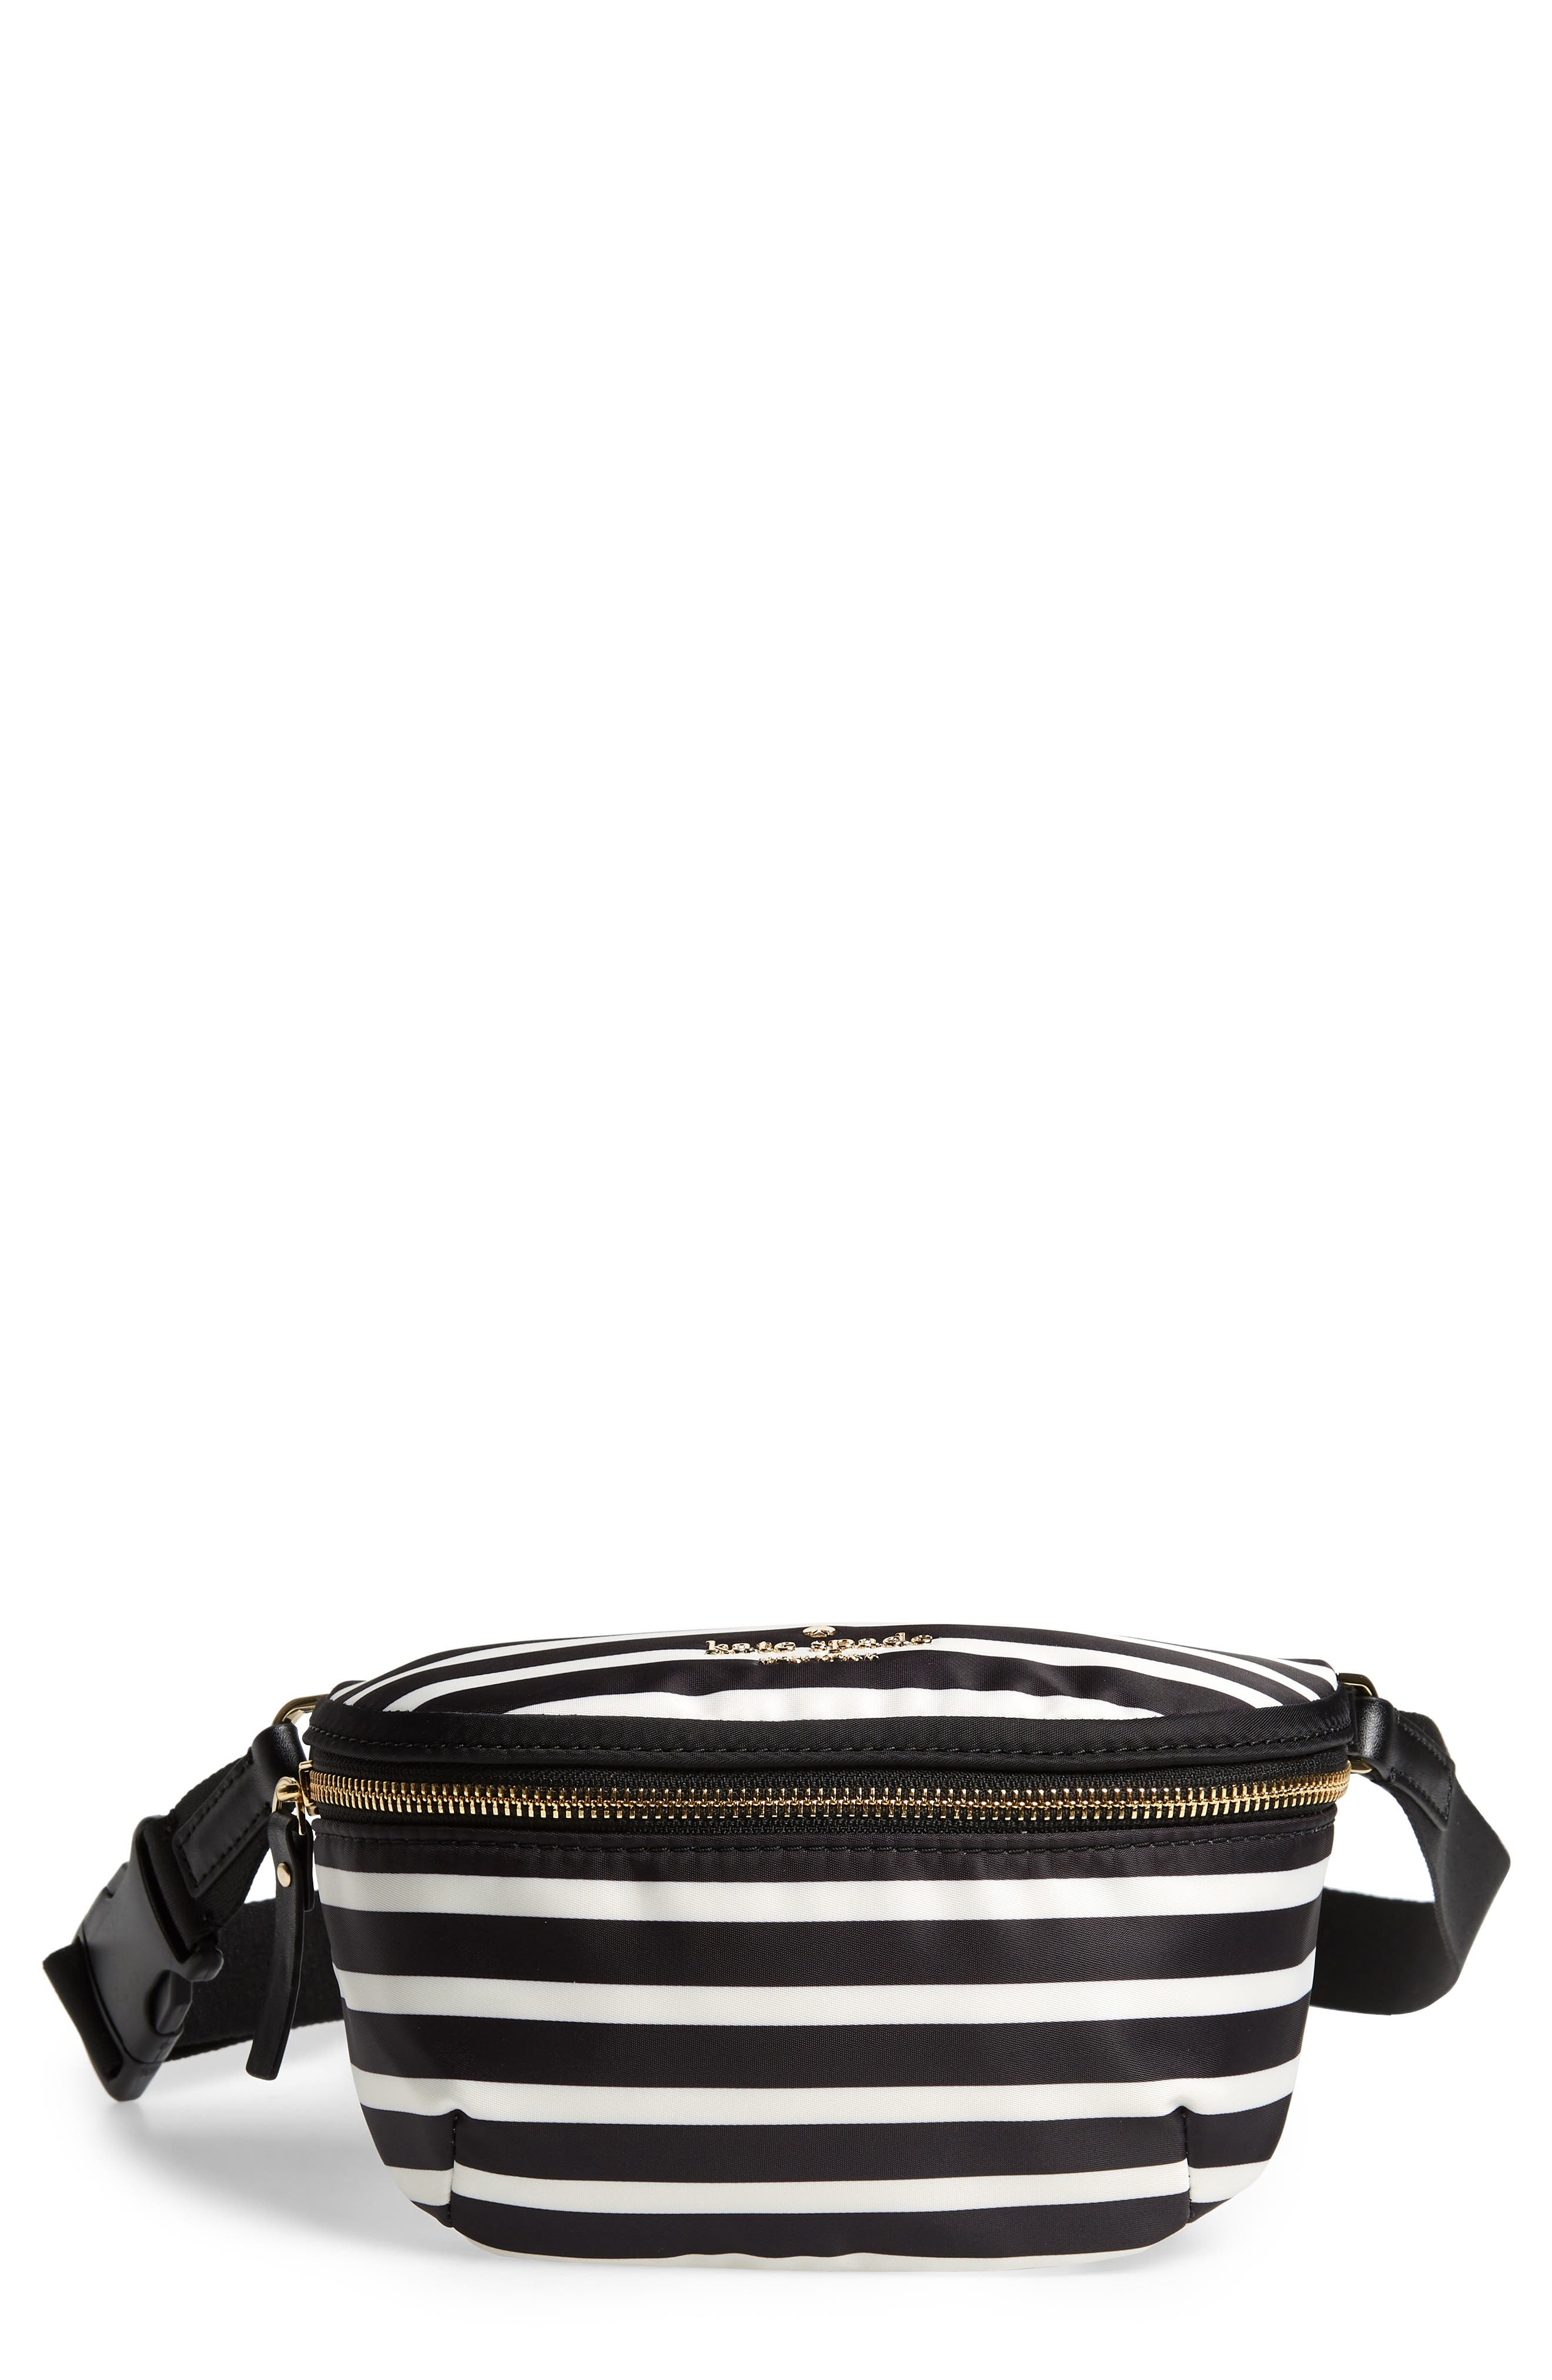 WATSON LANE - BETTY NYLON BELT BAG - BLACK